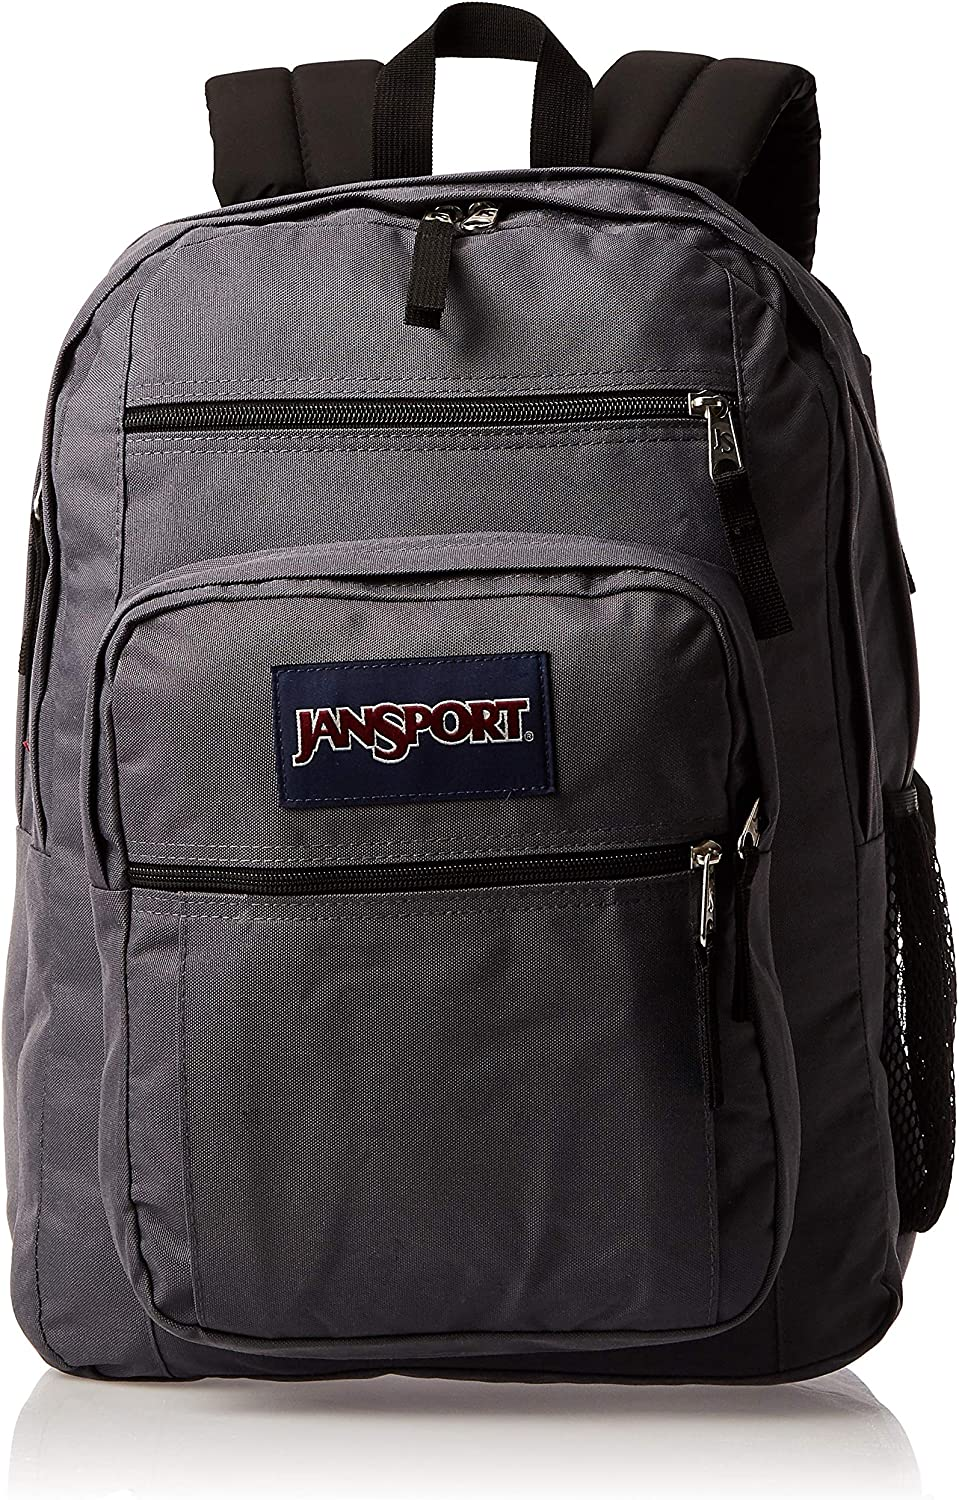 JanSport Big Student Backpack - 15-inch Laptop School Pack